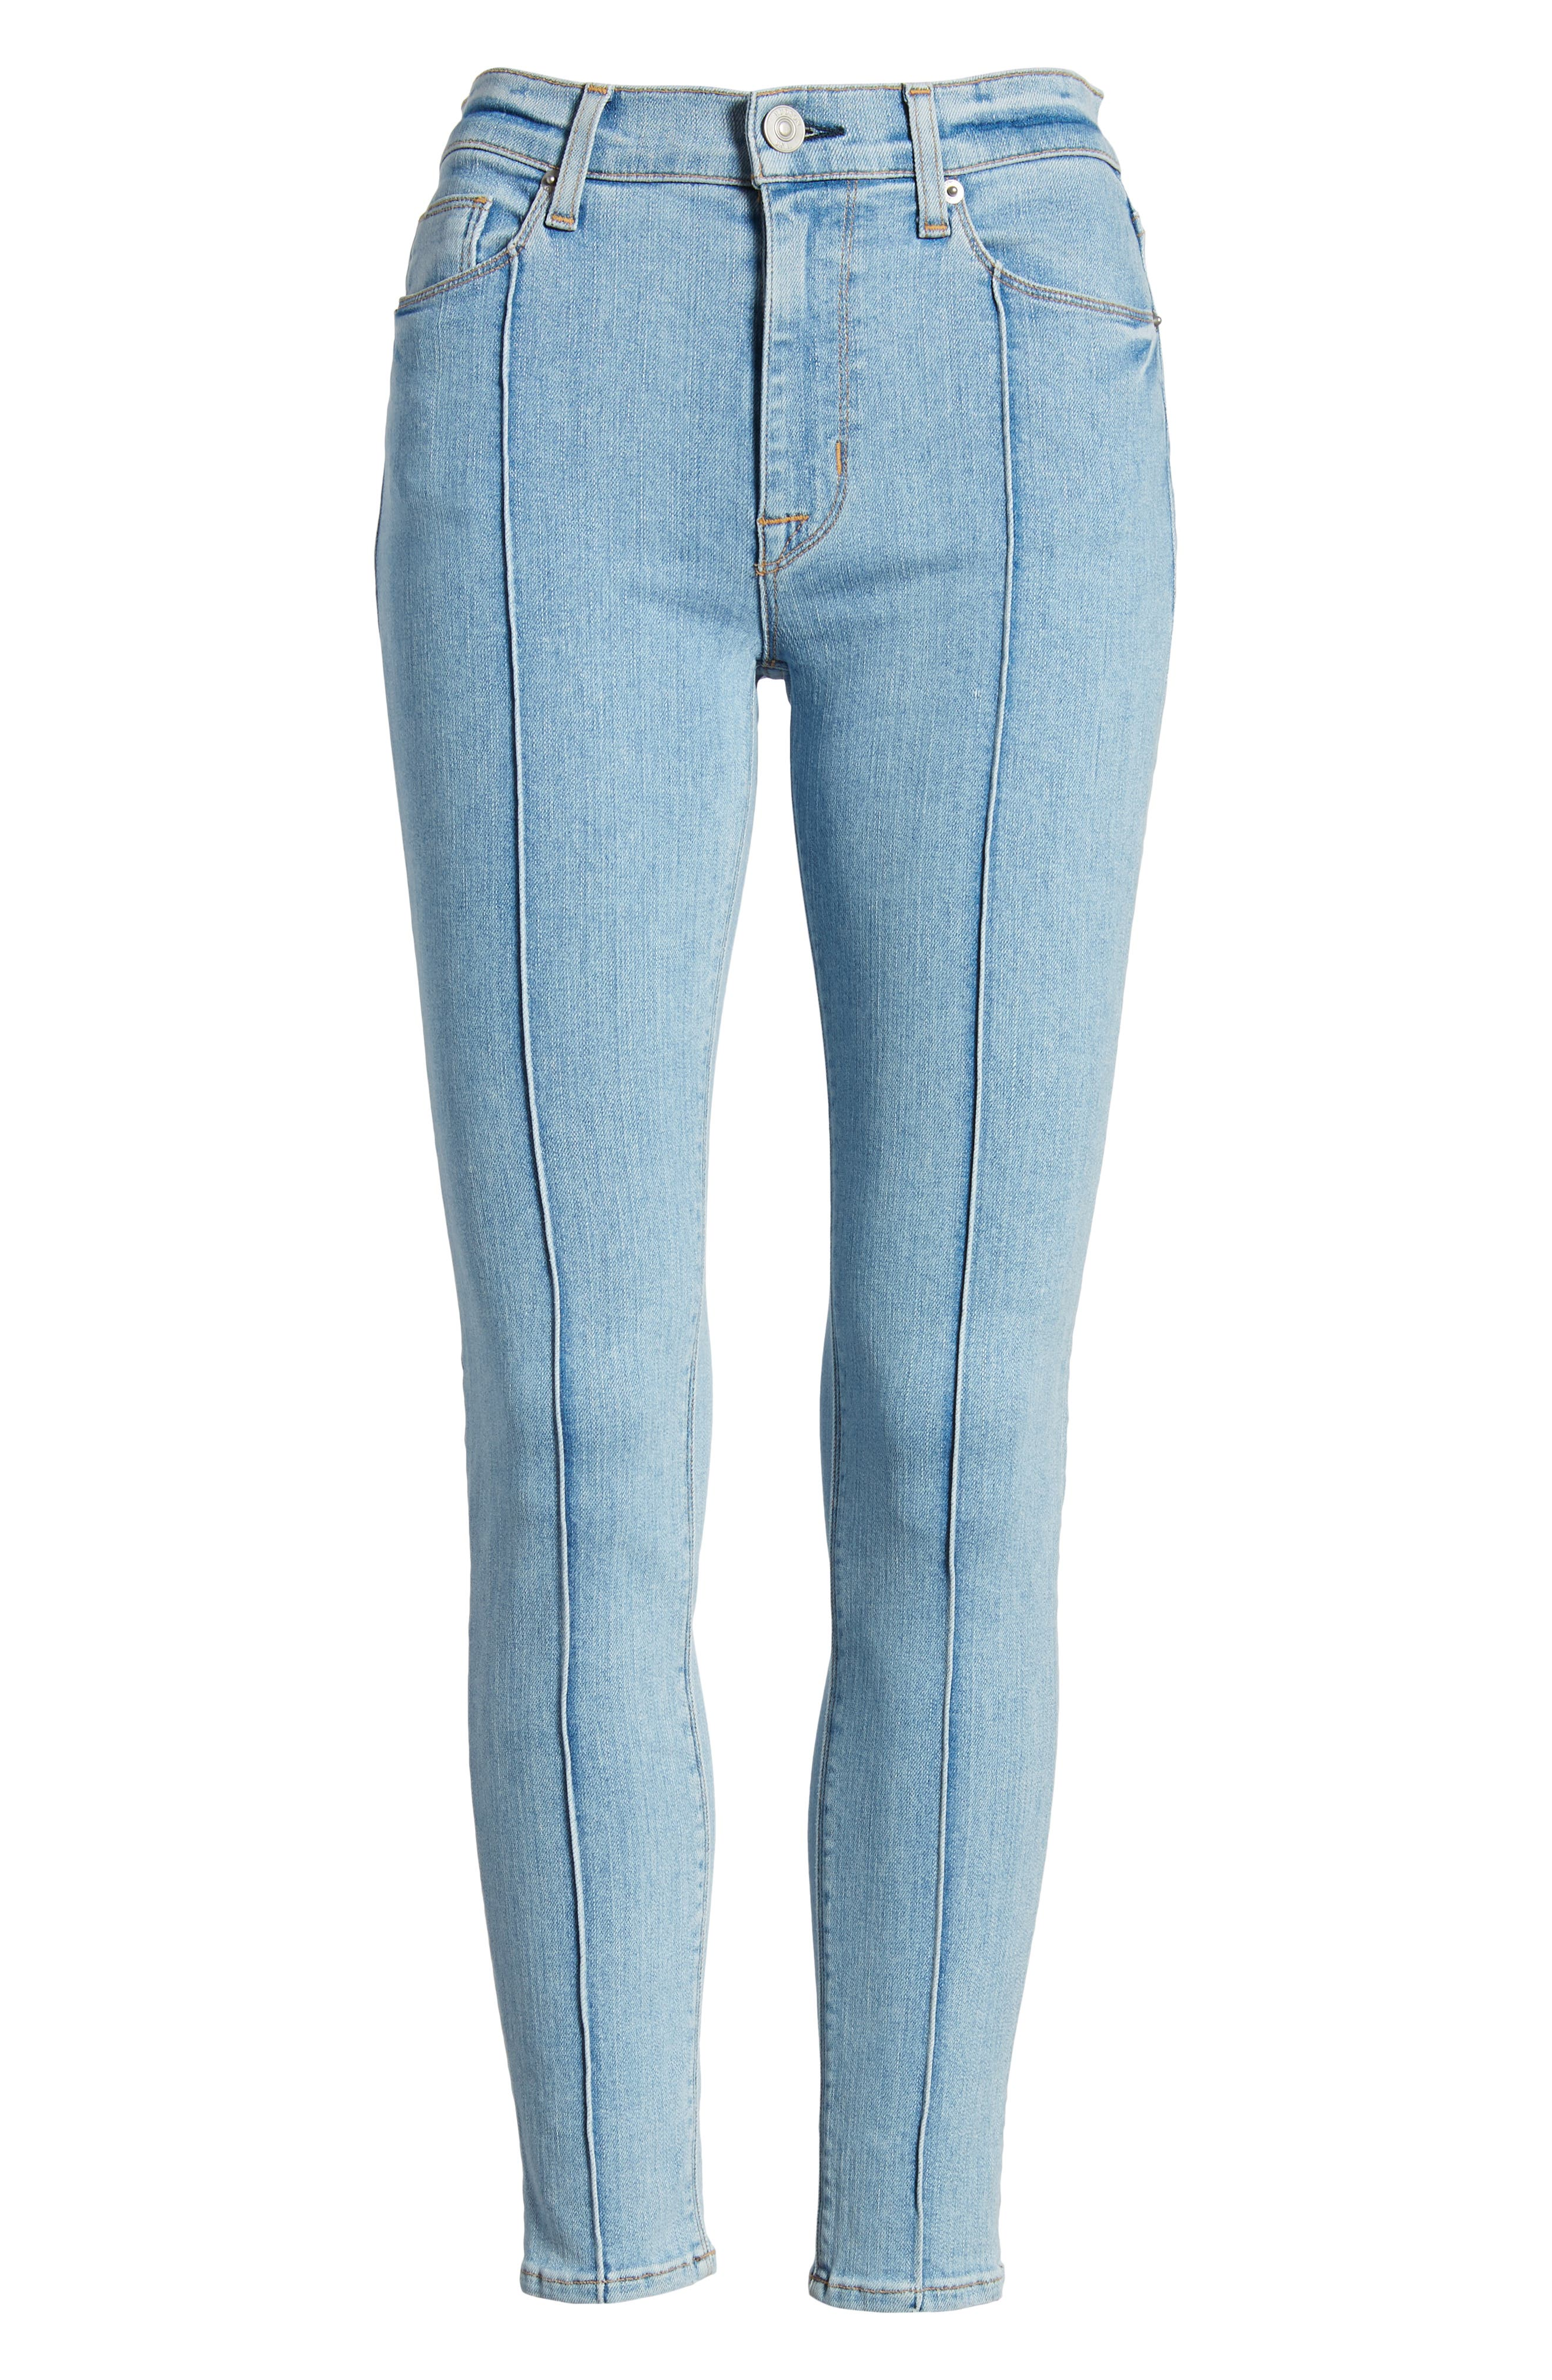 Barbara High Waist Super Skinny Jeans,                             Alternate thumbnail 7, color,                             450